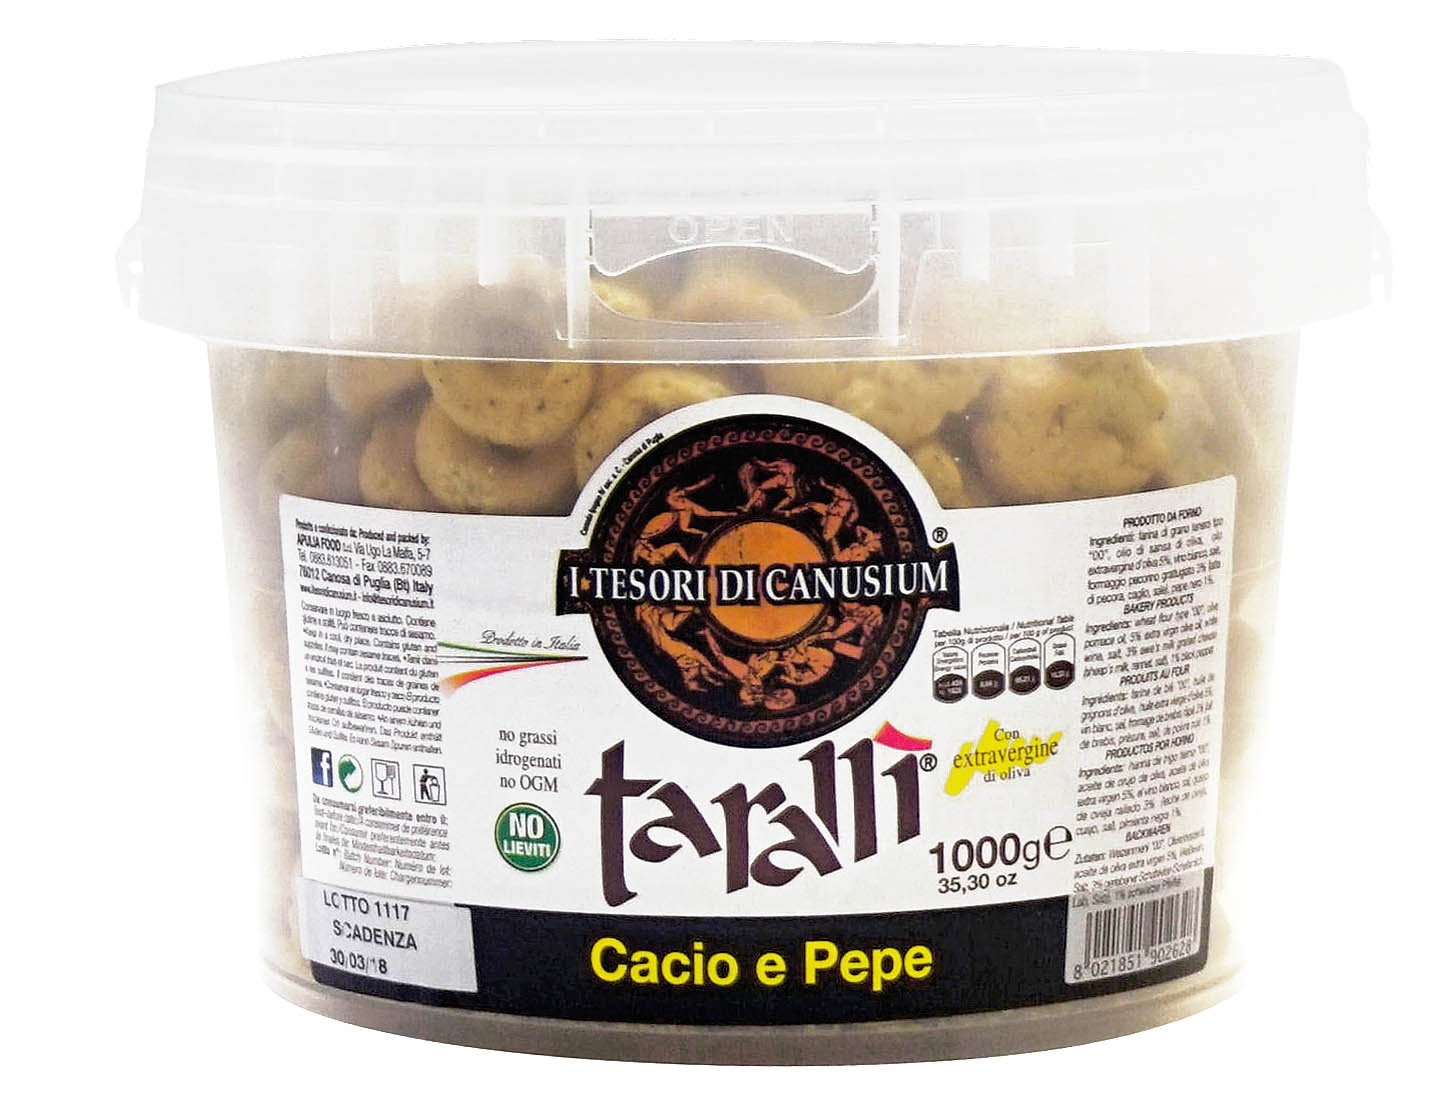 I Tesori di Canusium: ''Cacio e Pepe'' Italian Taralli, Cheese and Pepper Taste - 35.3 Ounces (1000gr) Package [ Italian Import ]